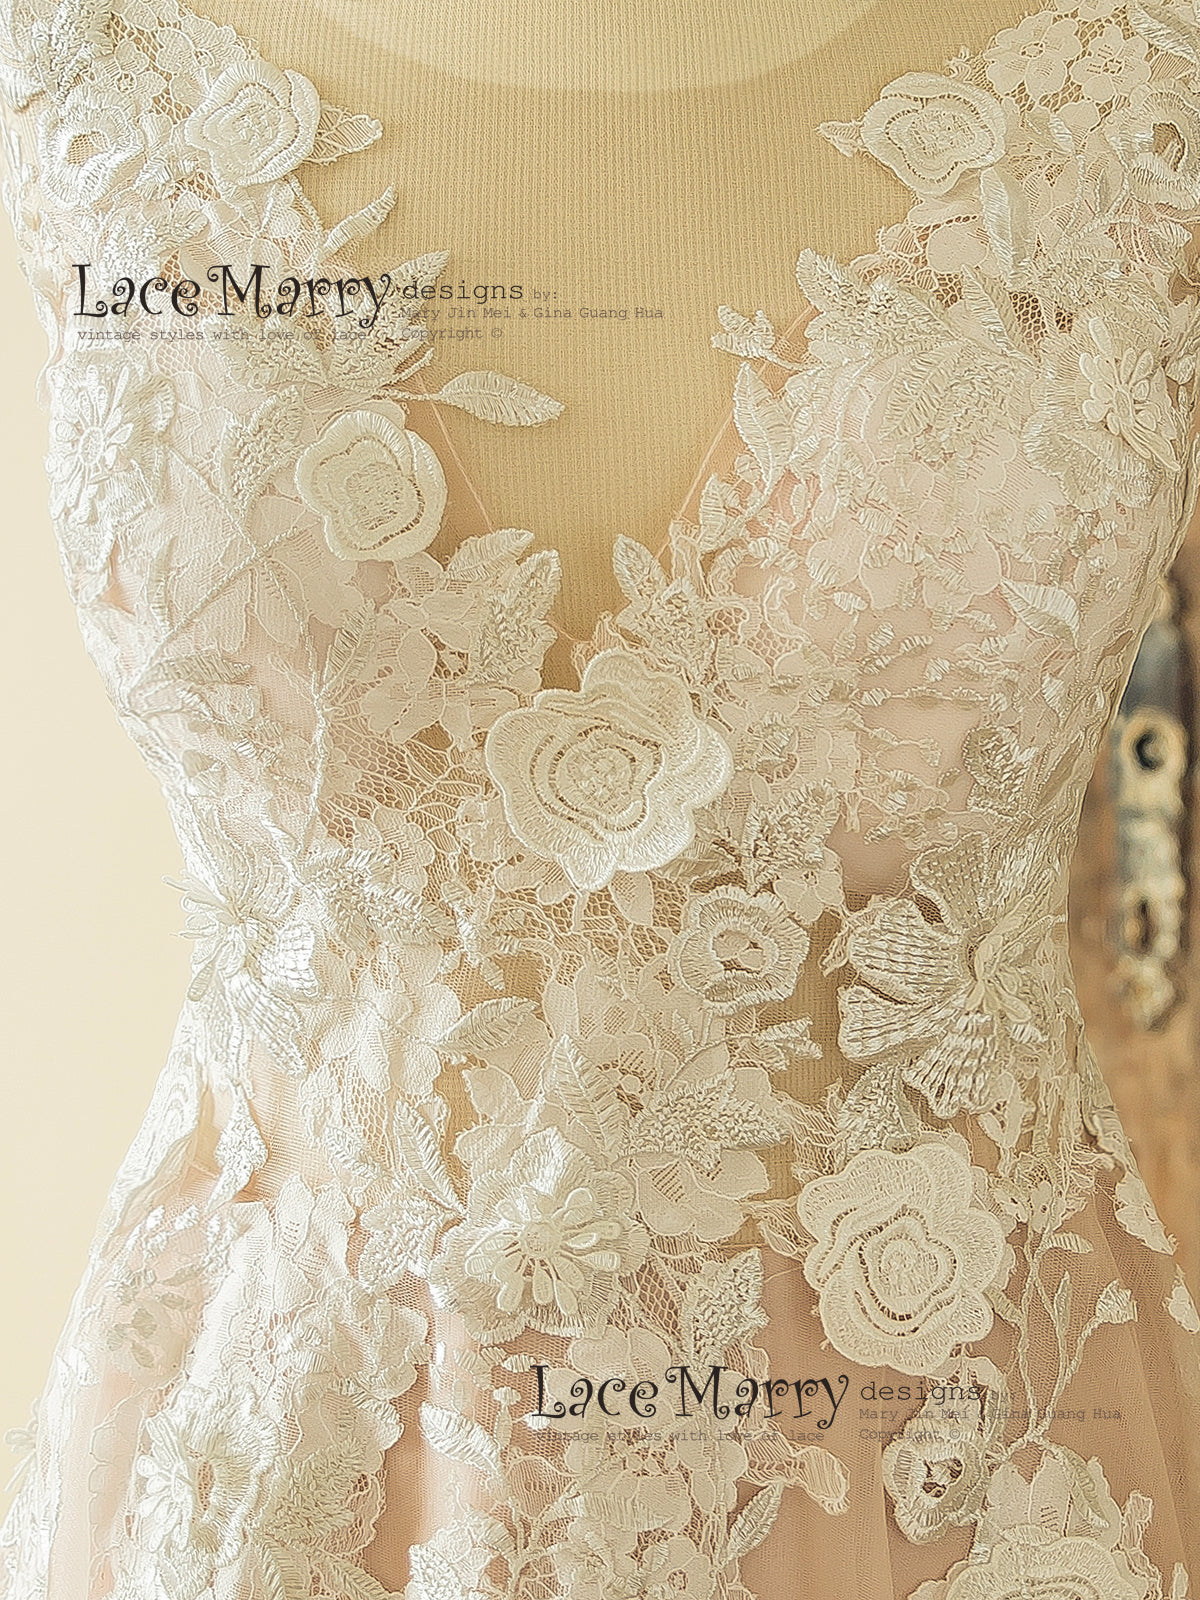 e7f9b388627 ... Pink Lace Wedding Dress  Wedding Dress with Ivory 3D Flower Appliques  ...